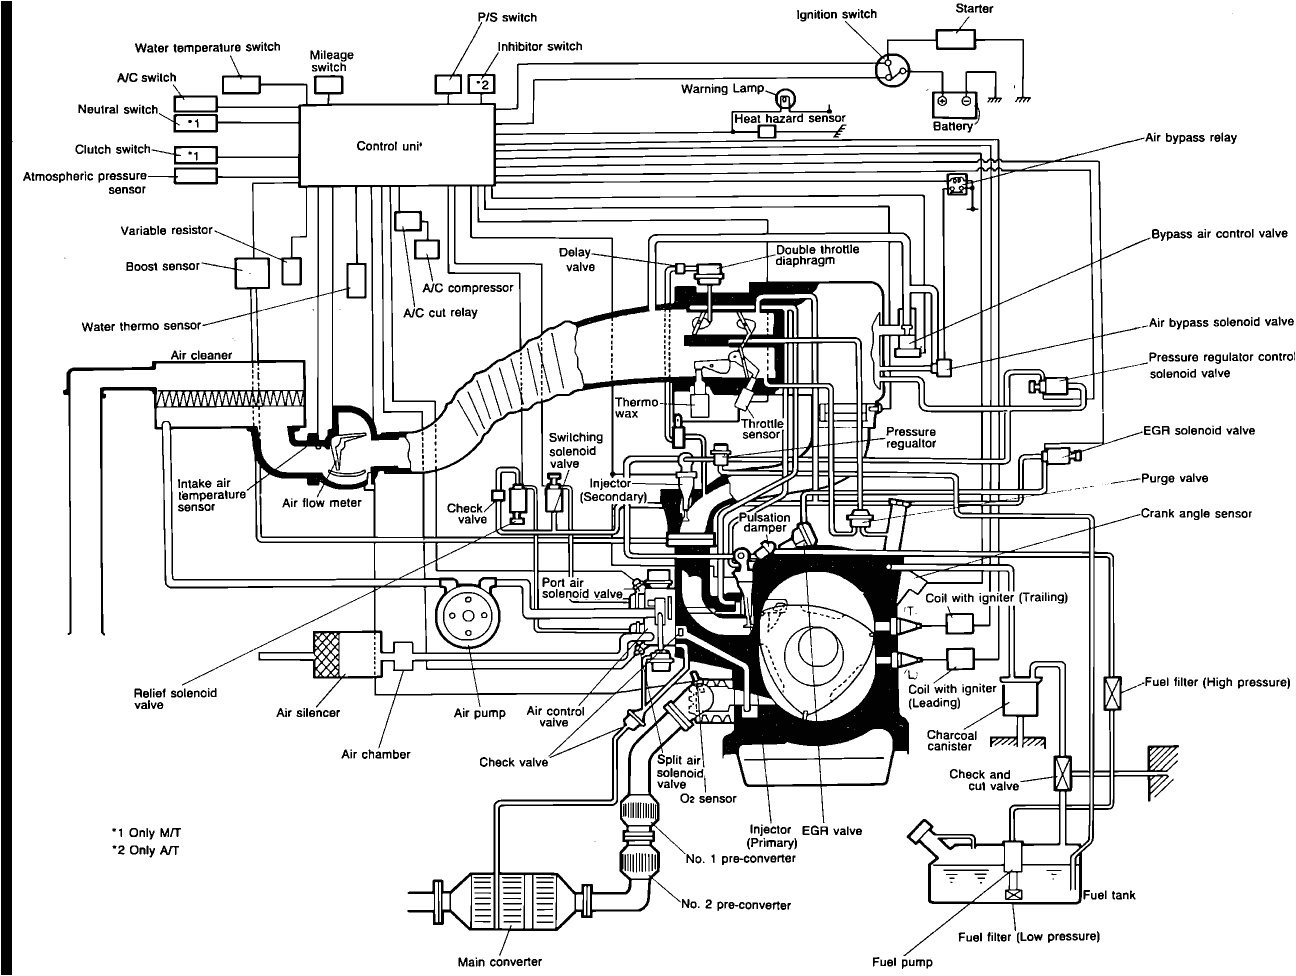 rx8 solenoid wiring wiring diagram rows rx8 solenoid wiring rx8 solenoid diagram